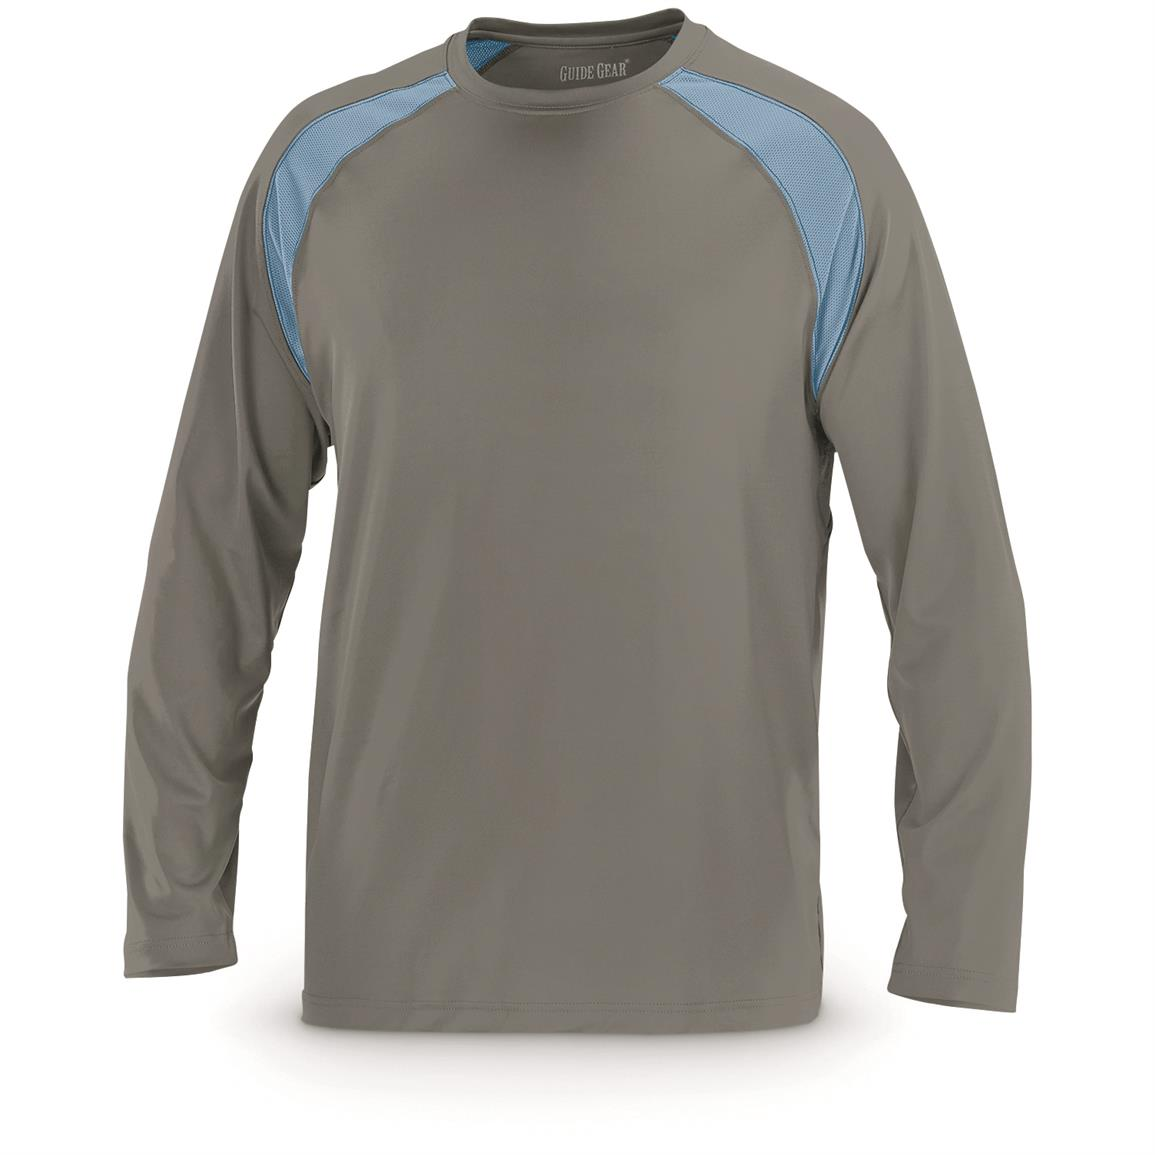 Guide Gear Men's Performance Fishing Long Sleeve T-Shirt, Charcoal